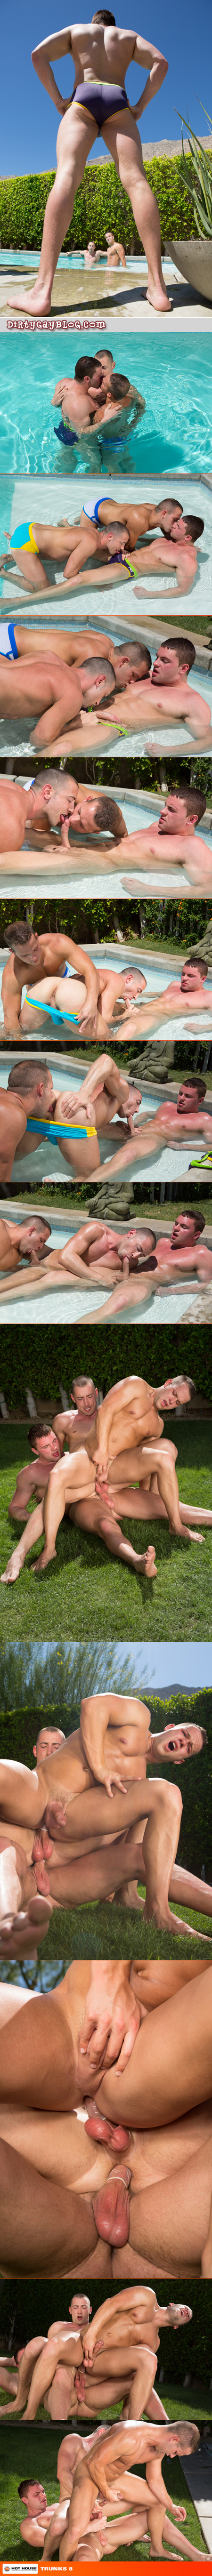 Young men in Speedos having a threeway in the pool.